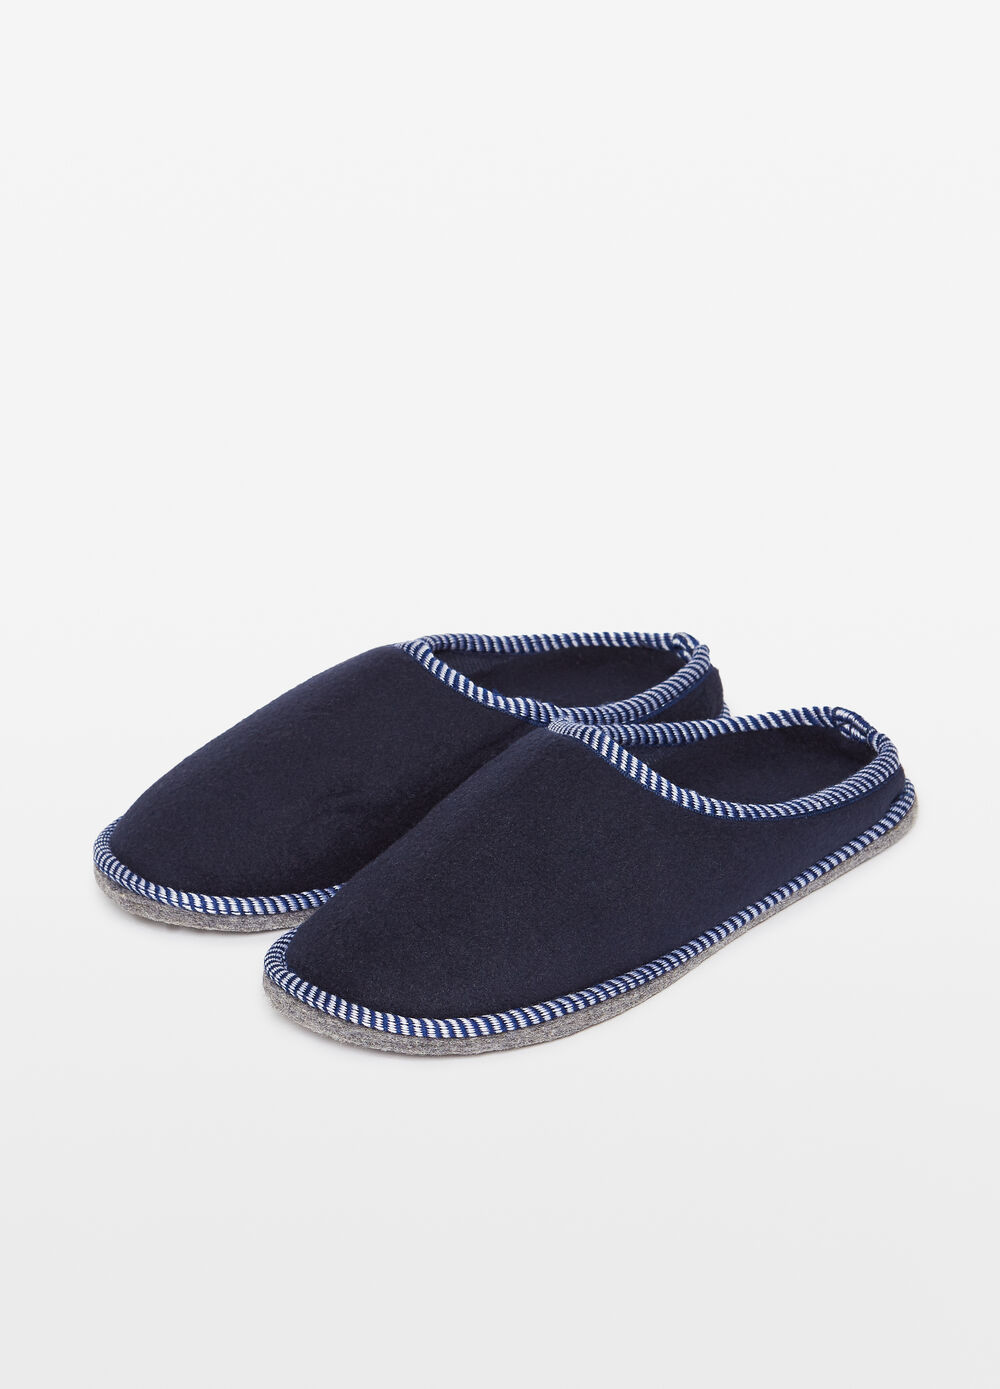 Solid colour slippers with striped weave edging